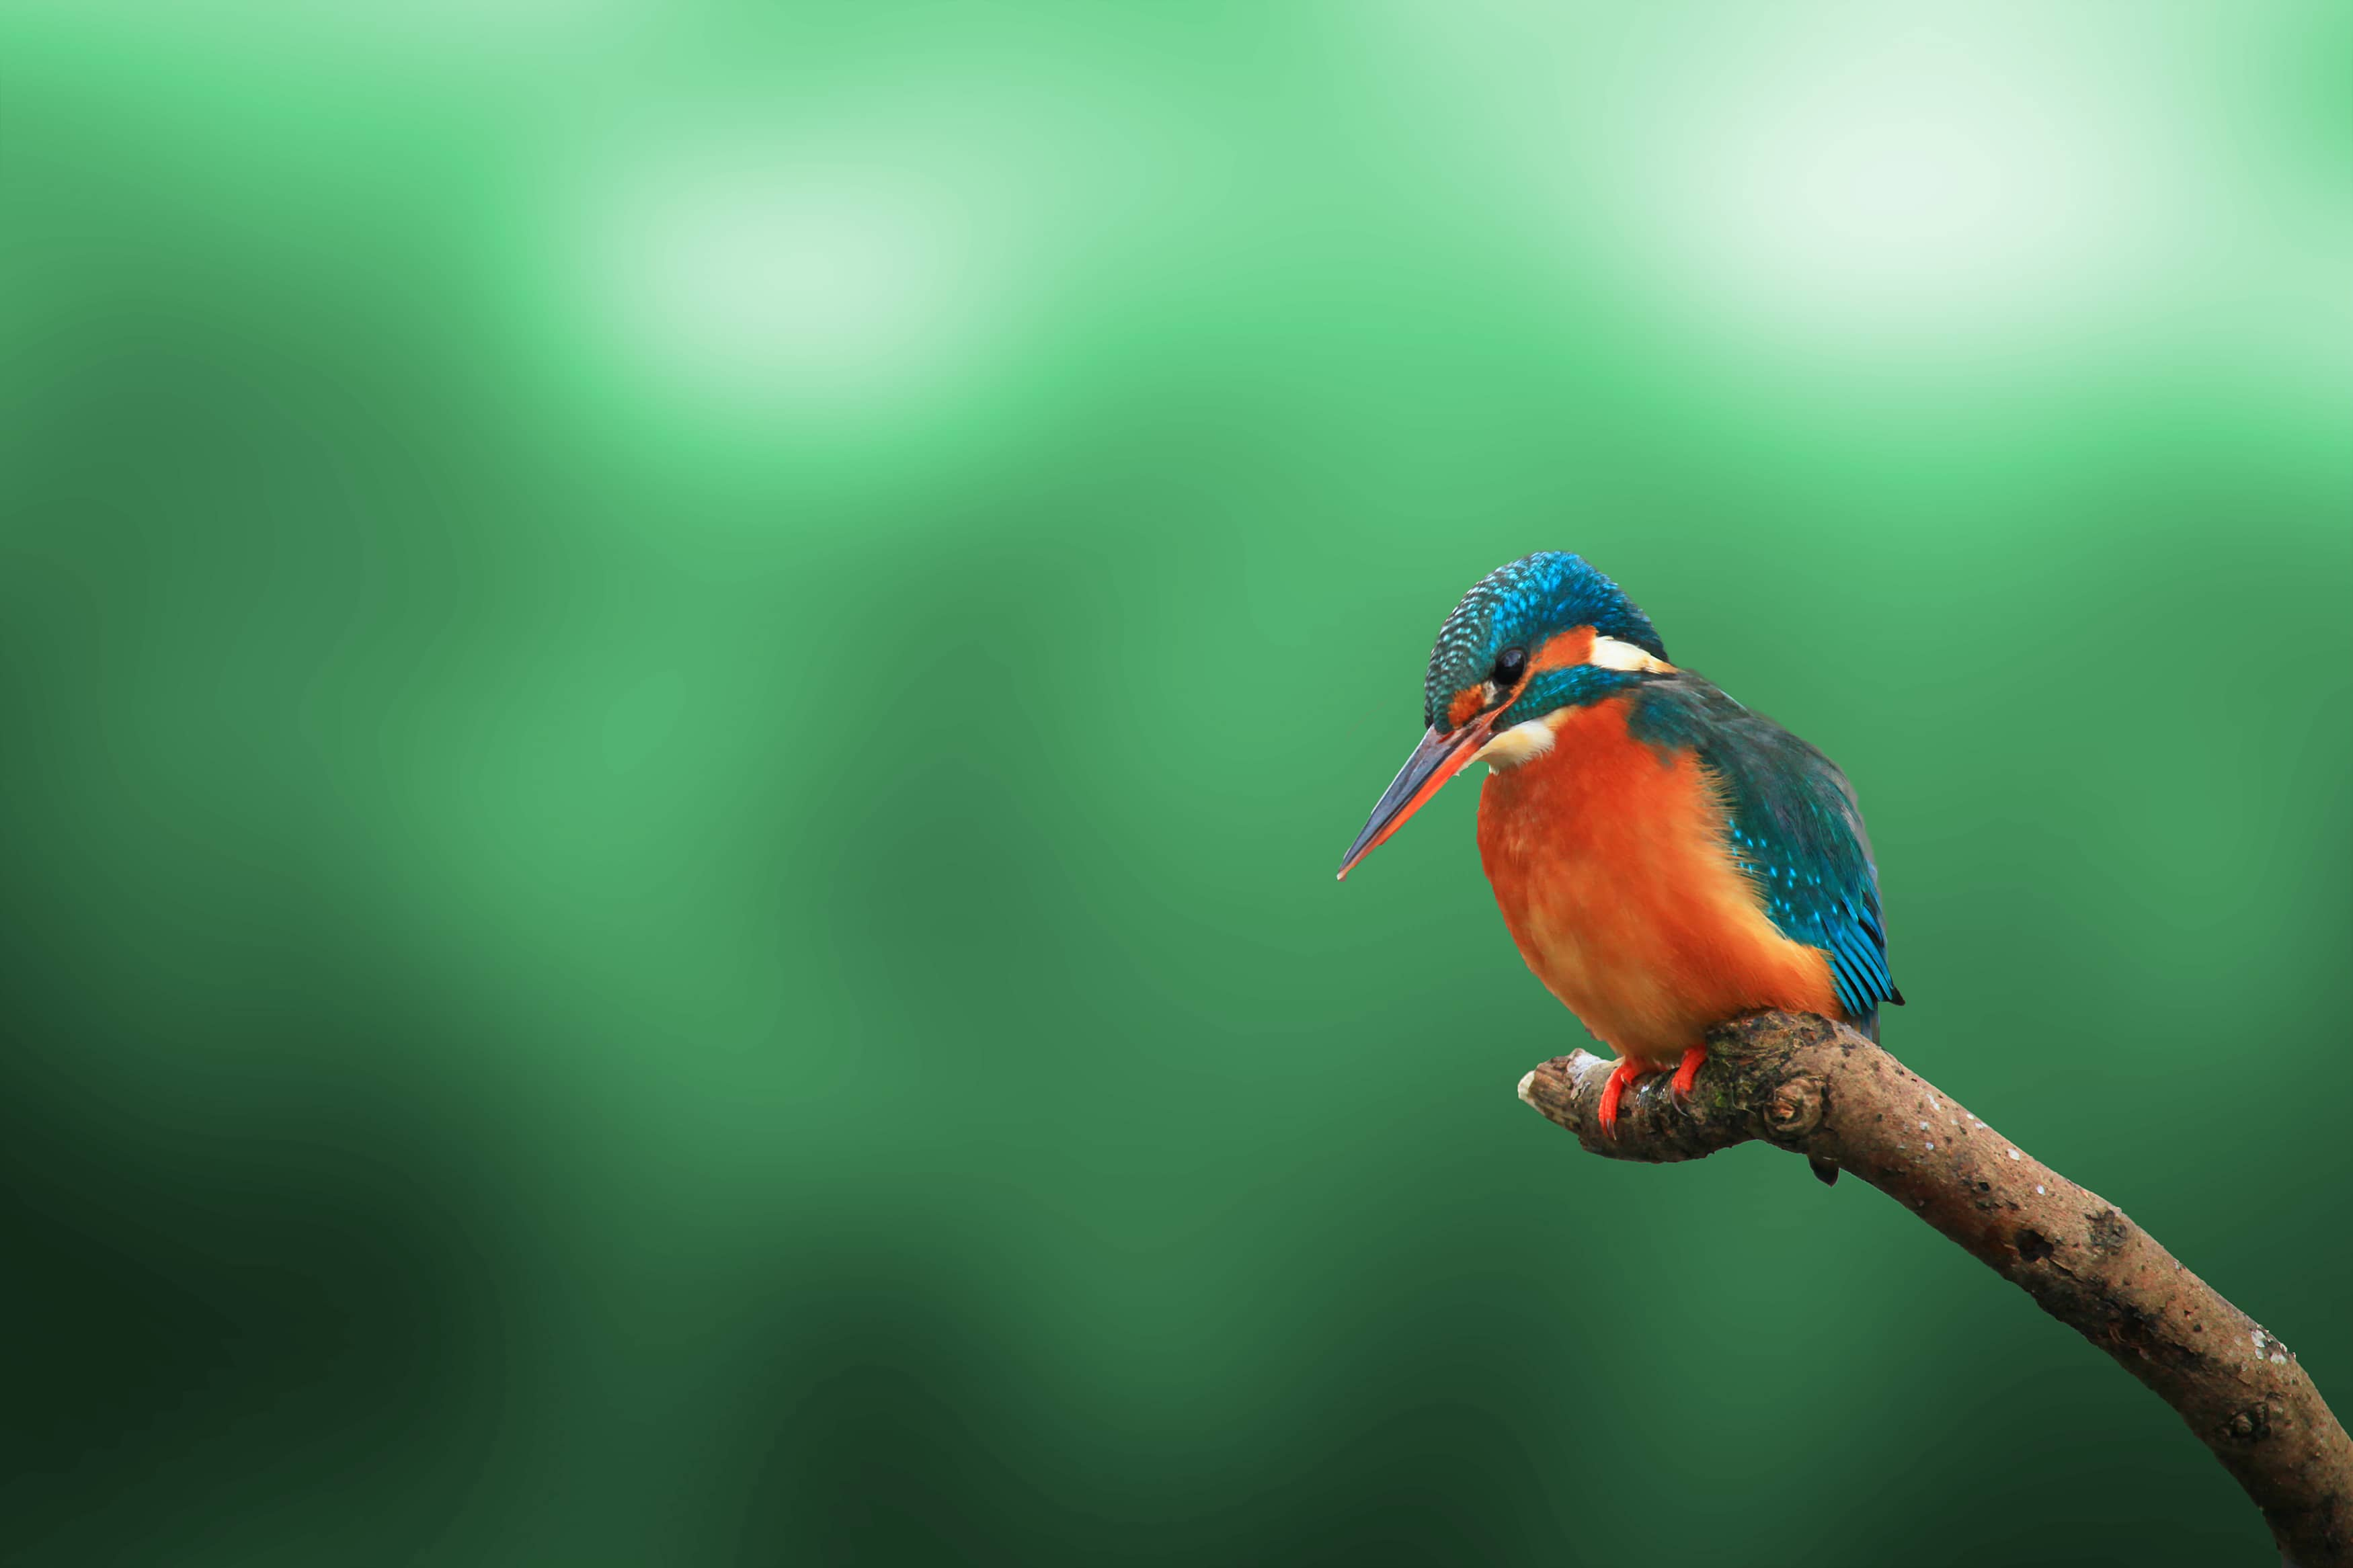 kingfisher against green background